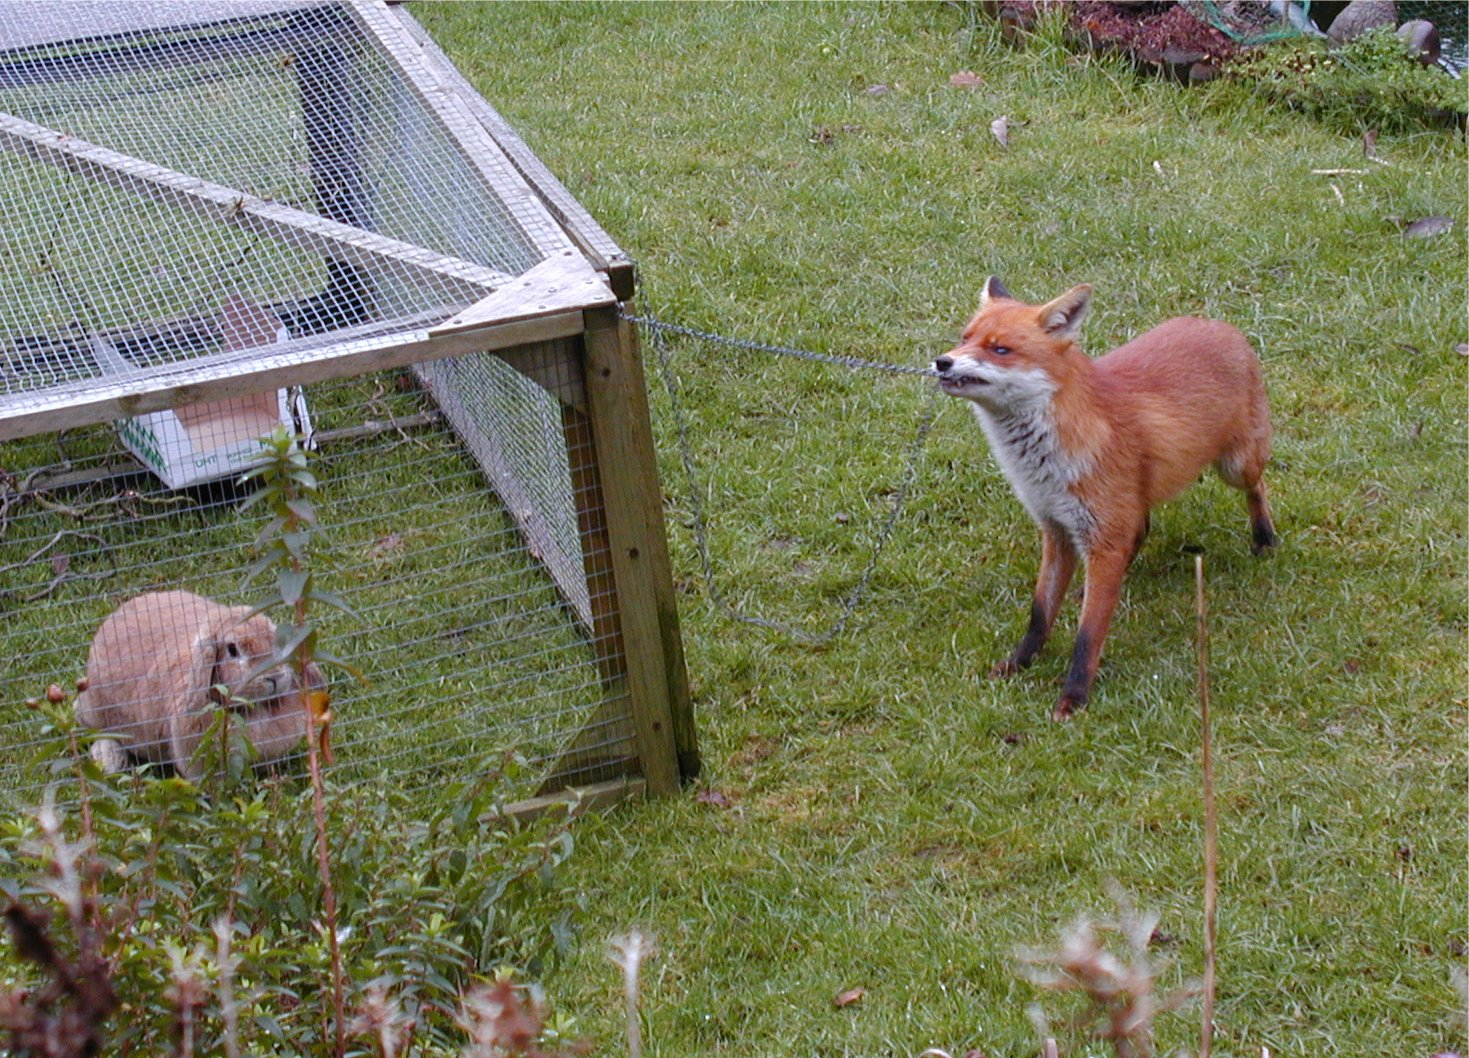 FileUrban Fox And Rabbitjpg Wikimedia Commons